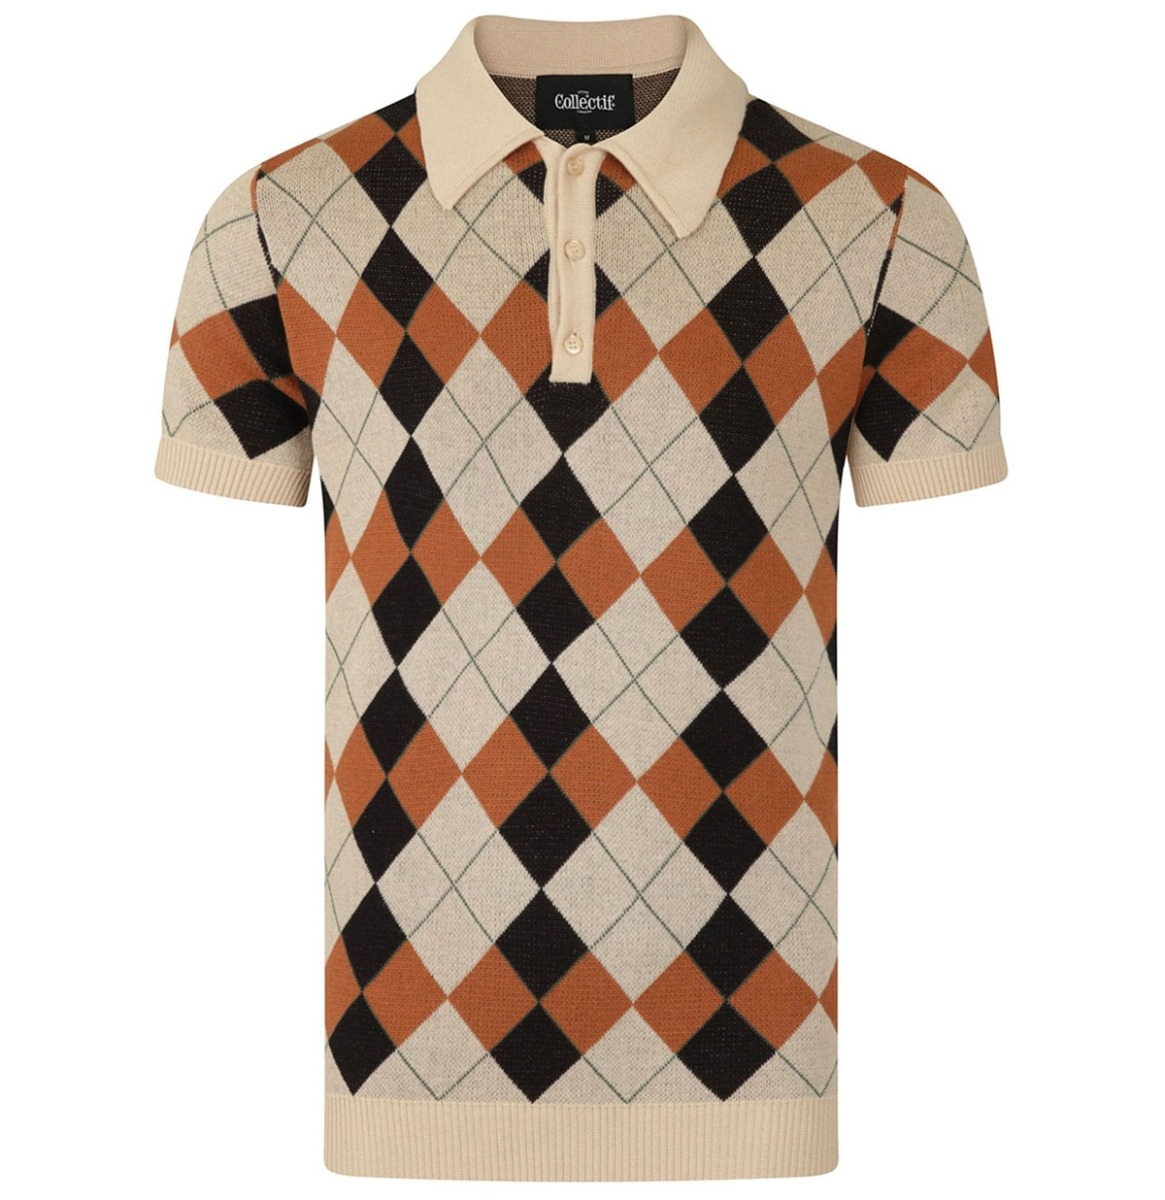 Collectif Pablo Muswell Hill Polo Shirt